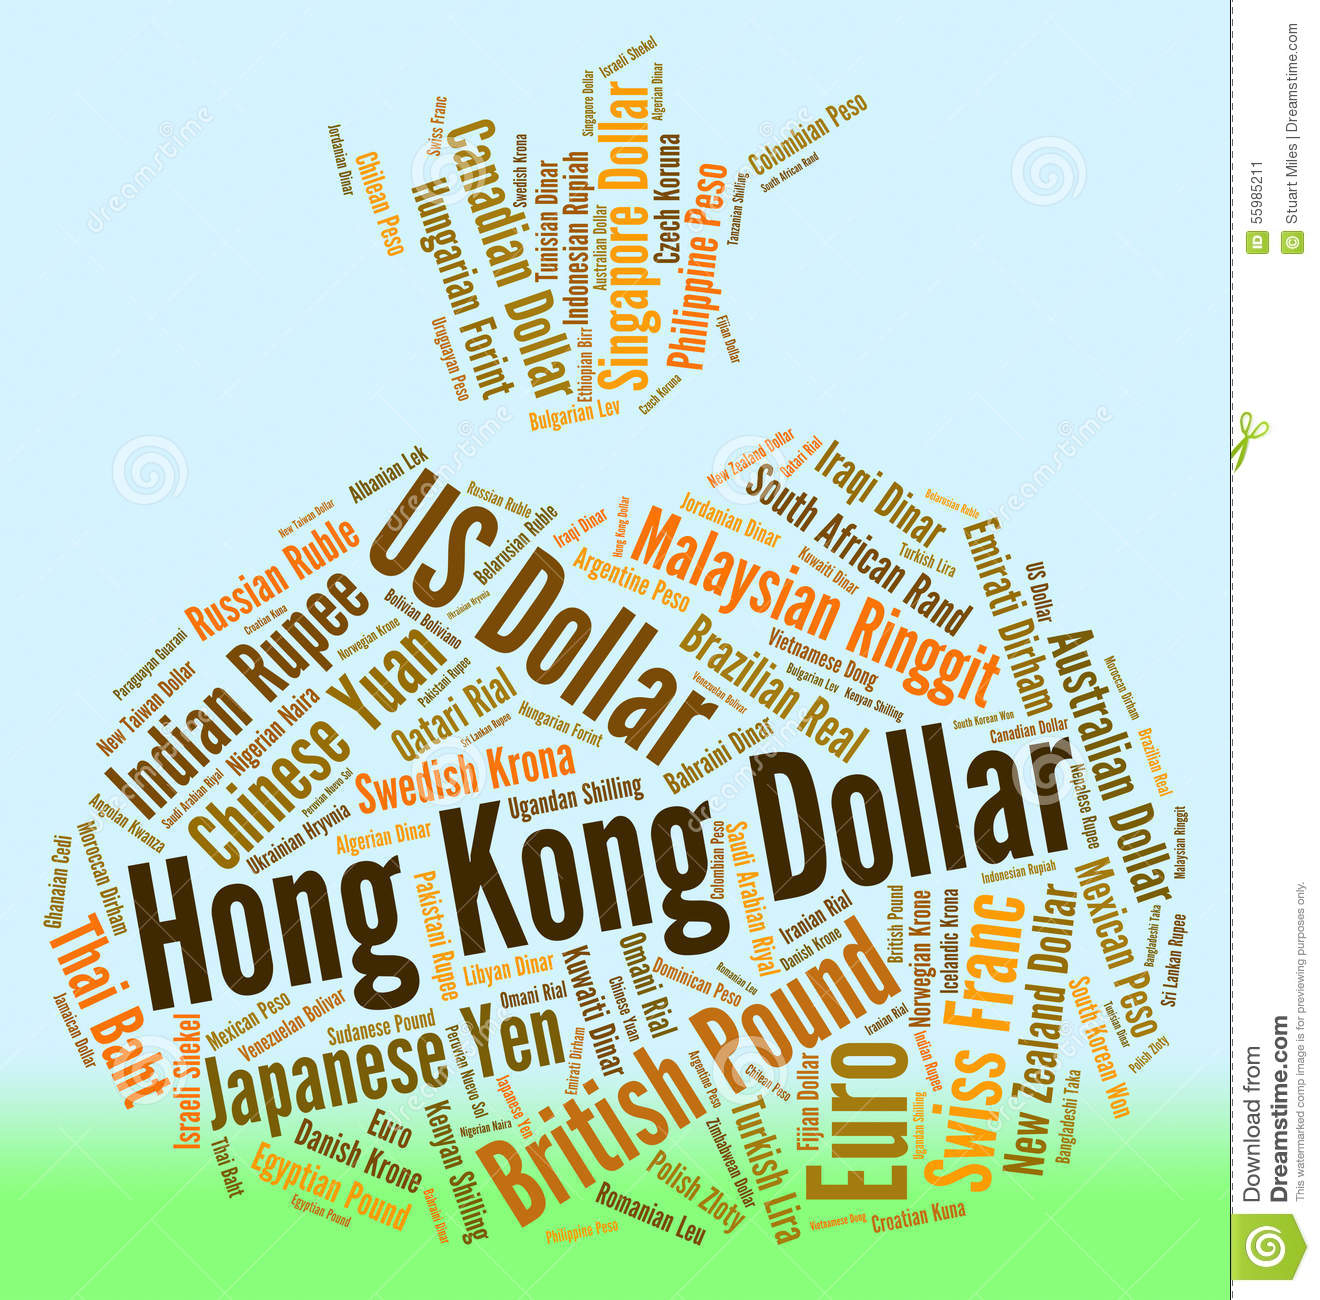 Forex 826 usd to hkd